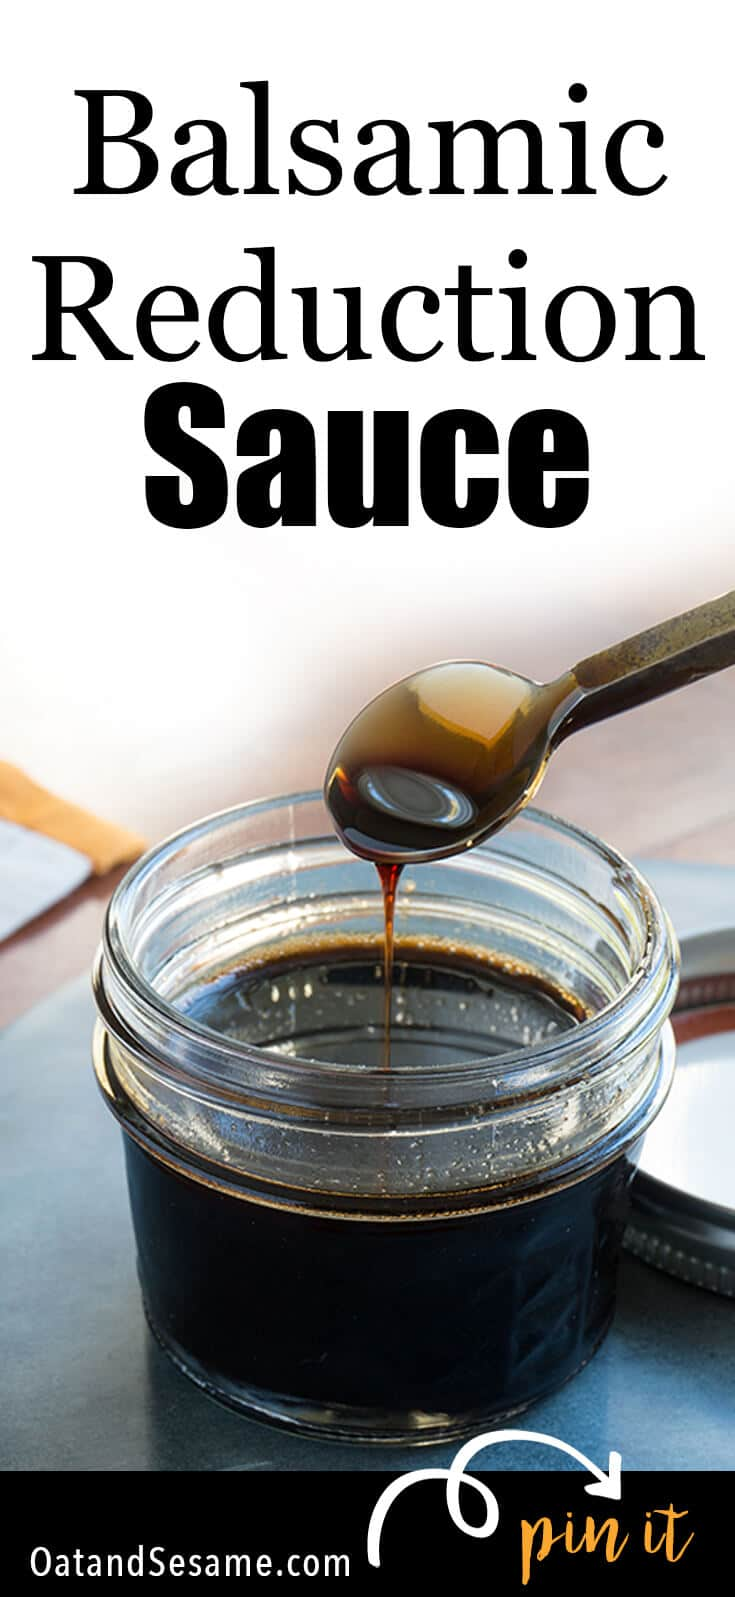 Balsamic Reduction Sauce will elevate almost any meal from breakfast to dessert! | DRESSING | SAUCE | Recipe at OatandSesame.com